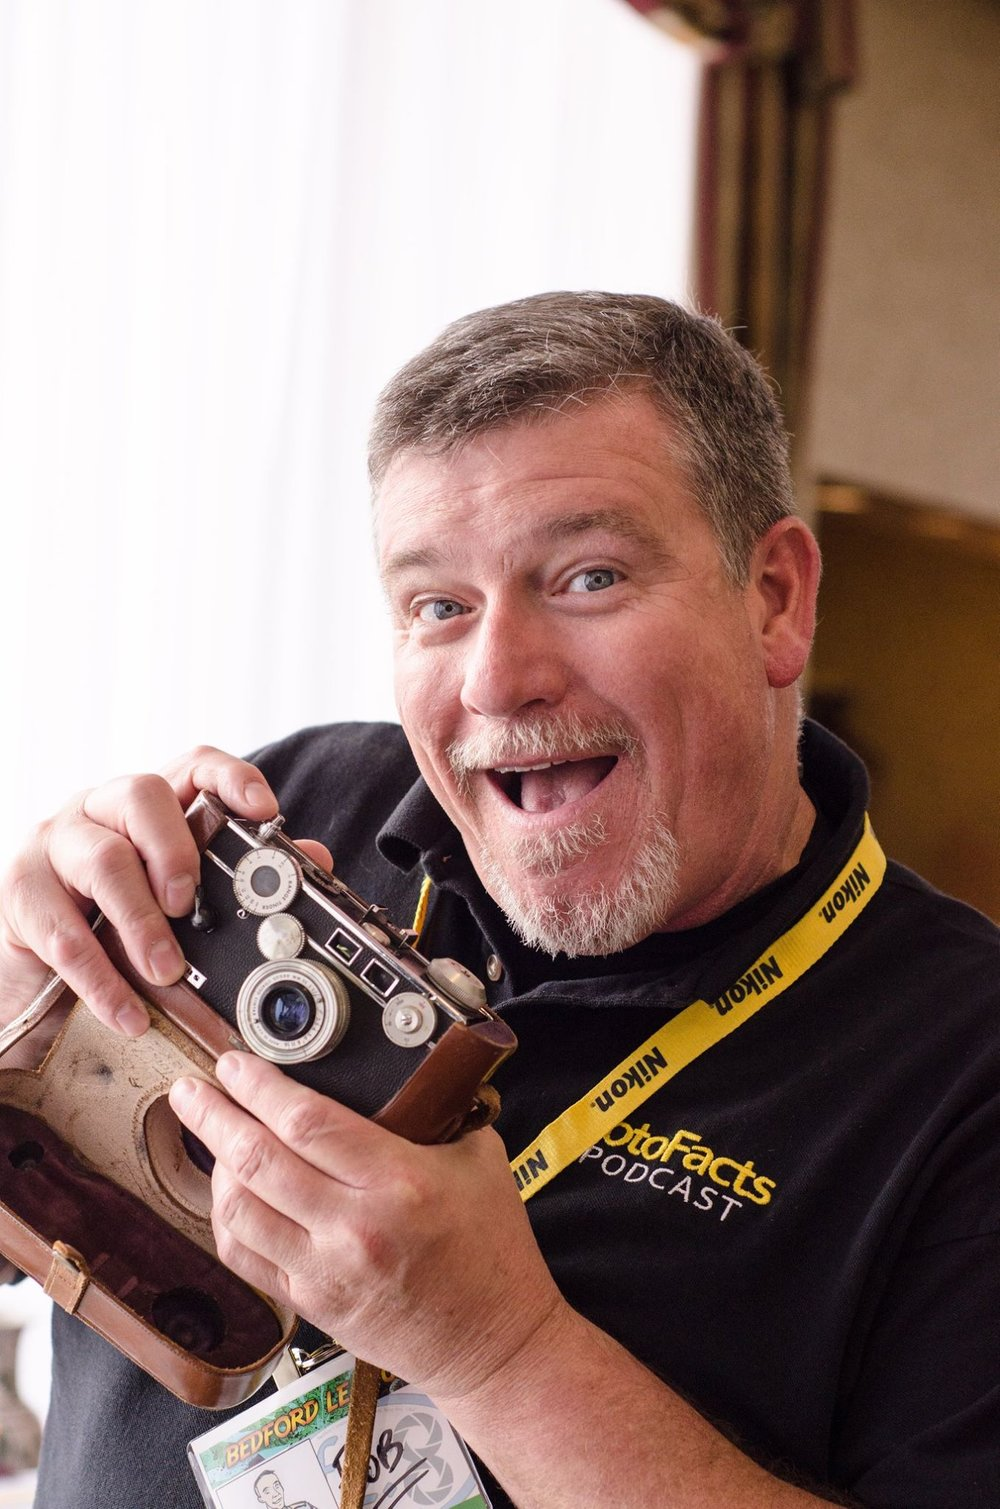 Have you seen this funny face around the SWPPA Convention before?